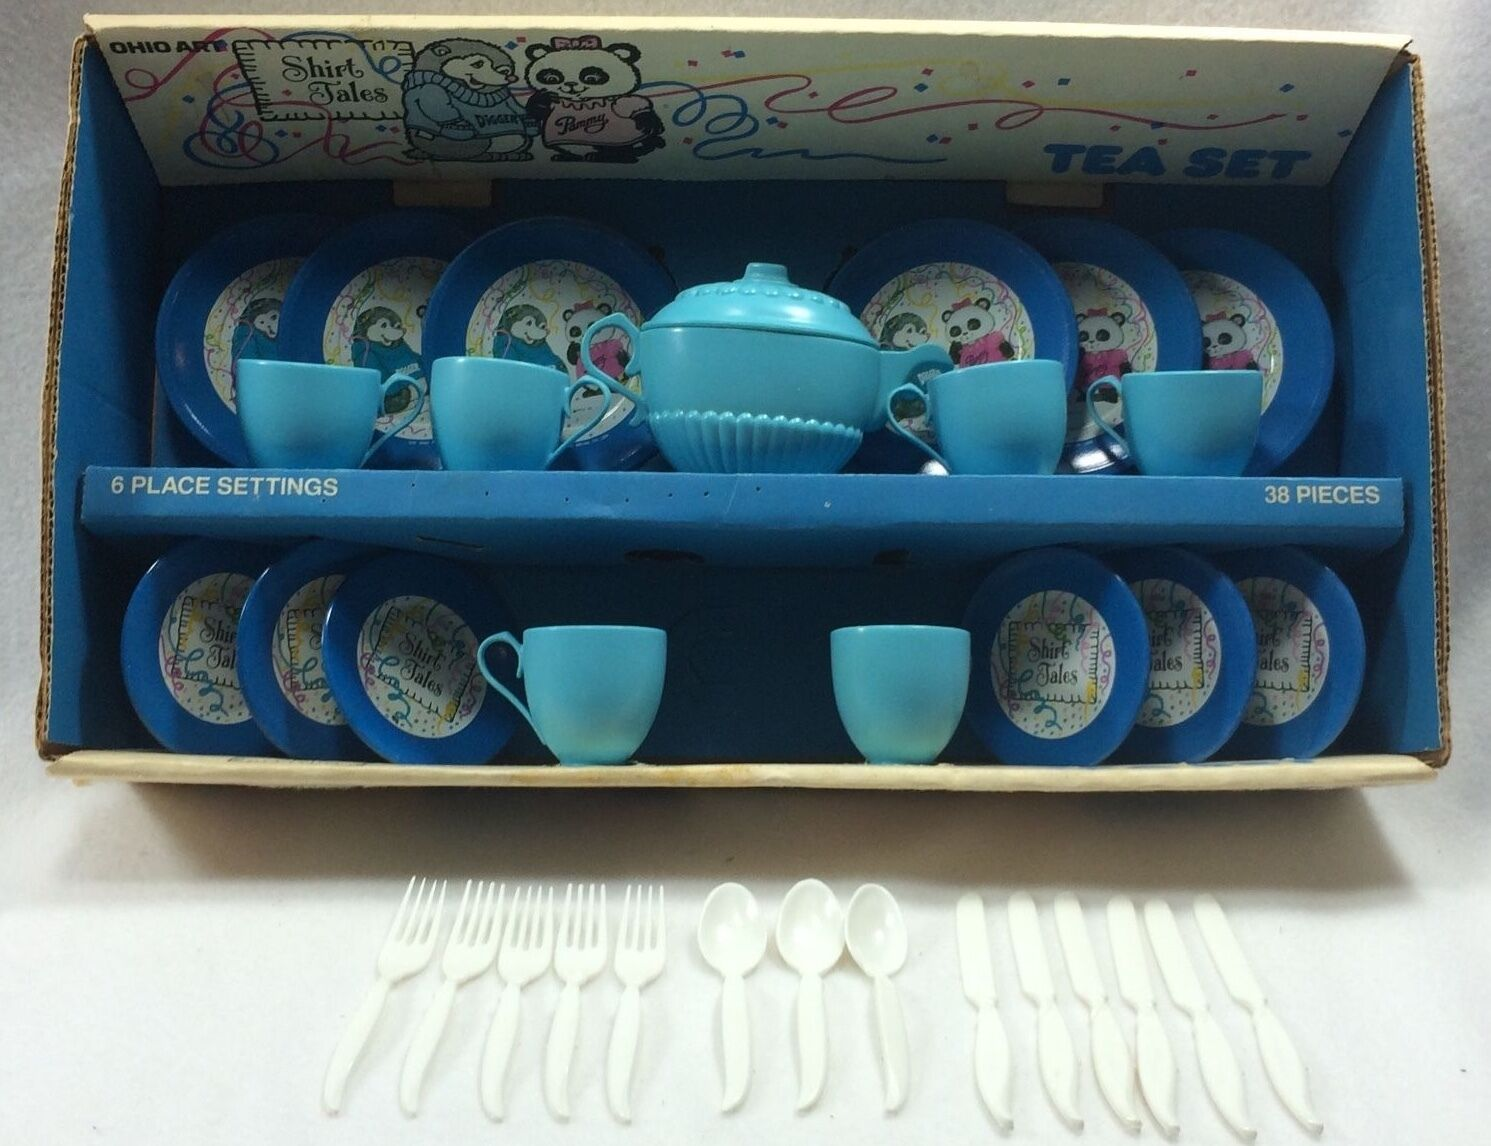 Vtg Shirt Tales Ohio Art Tin Tea Set 34 Pieces Cups Saucers Plates Utensils Box